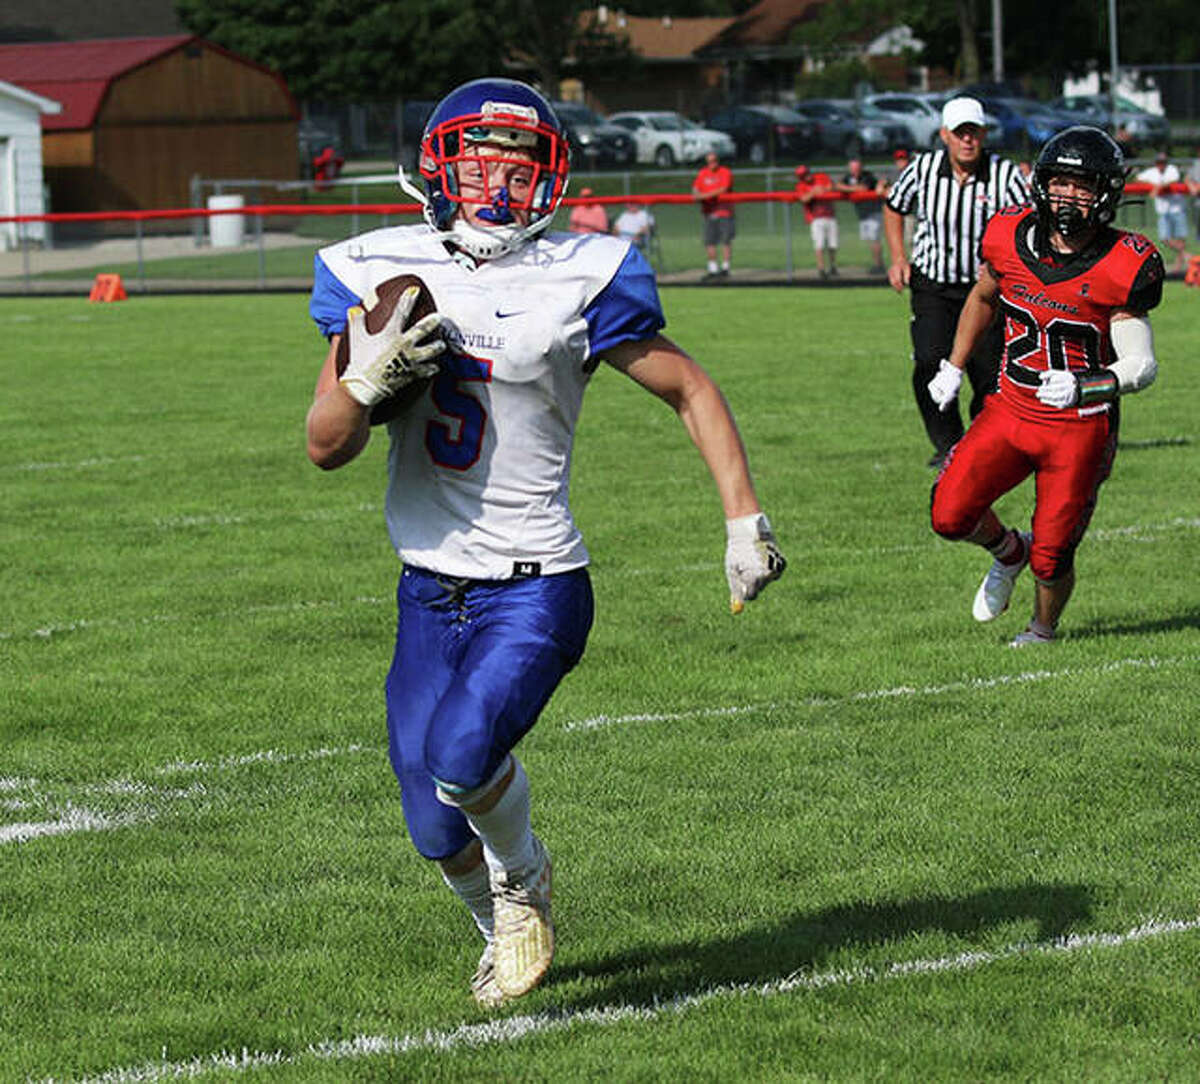 Carlinville's Mason Patton scored three touchdowns and helped the Cavaliers to a 48-0 South Central Conference victory over Litchfield Friday night in Carlinville. He is shown in action at Gibson City earlier this season.